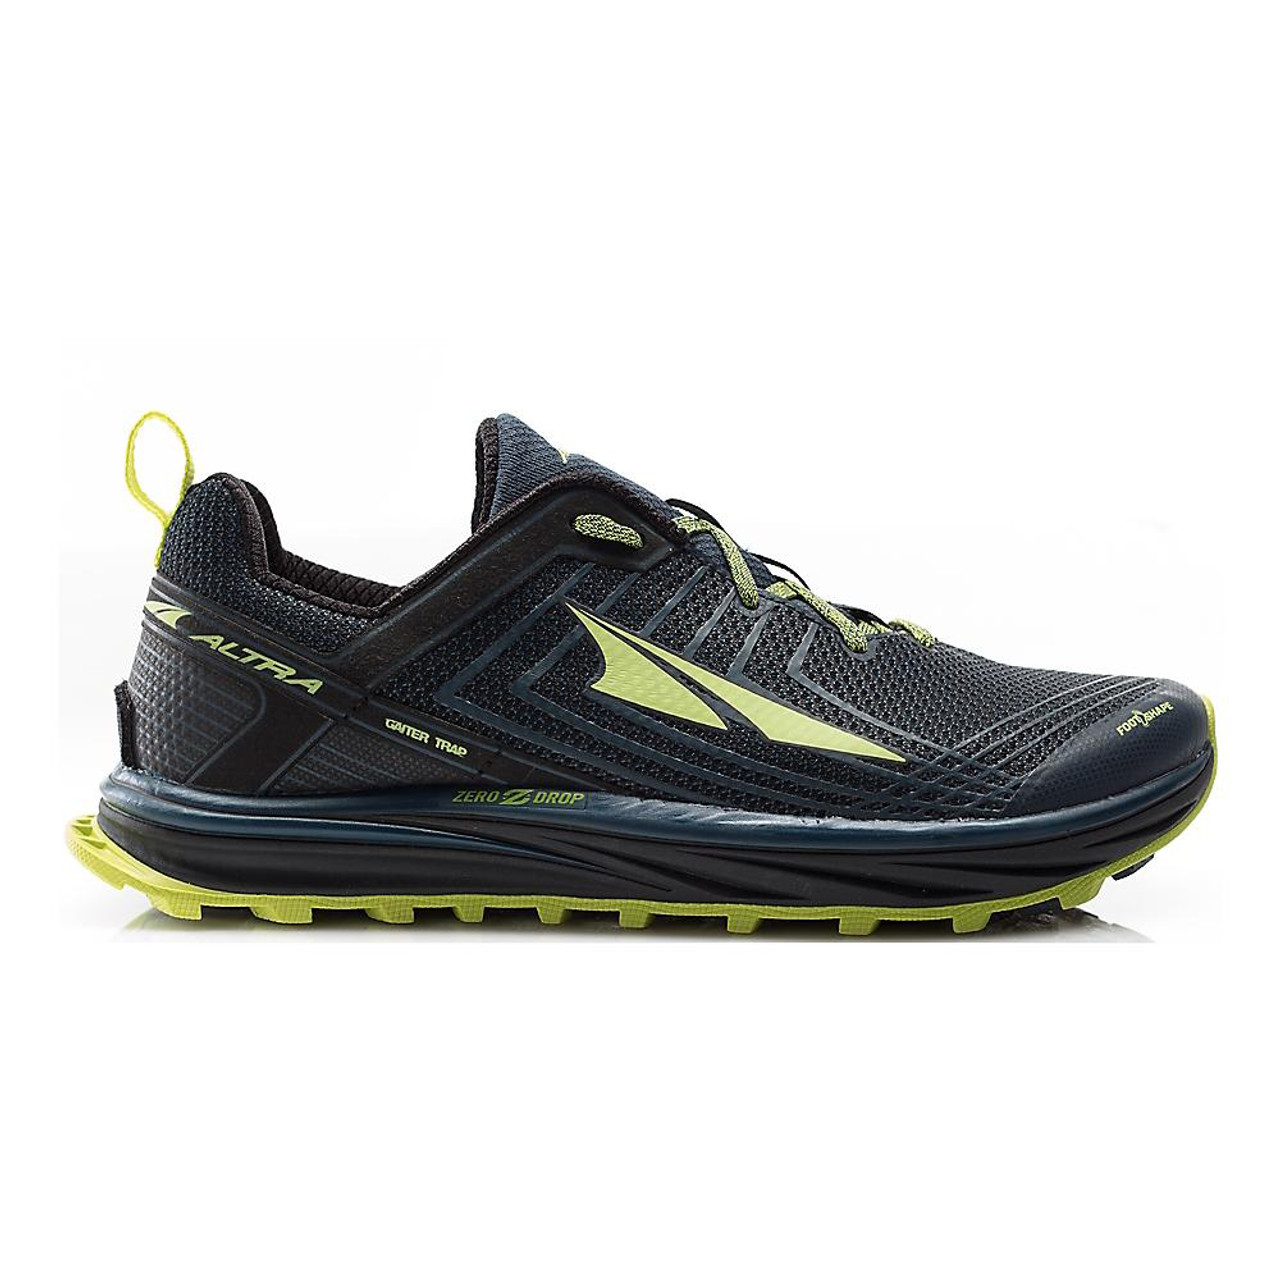 Altra Timp 1.5 Trail Running Shoes